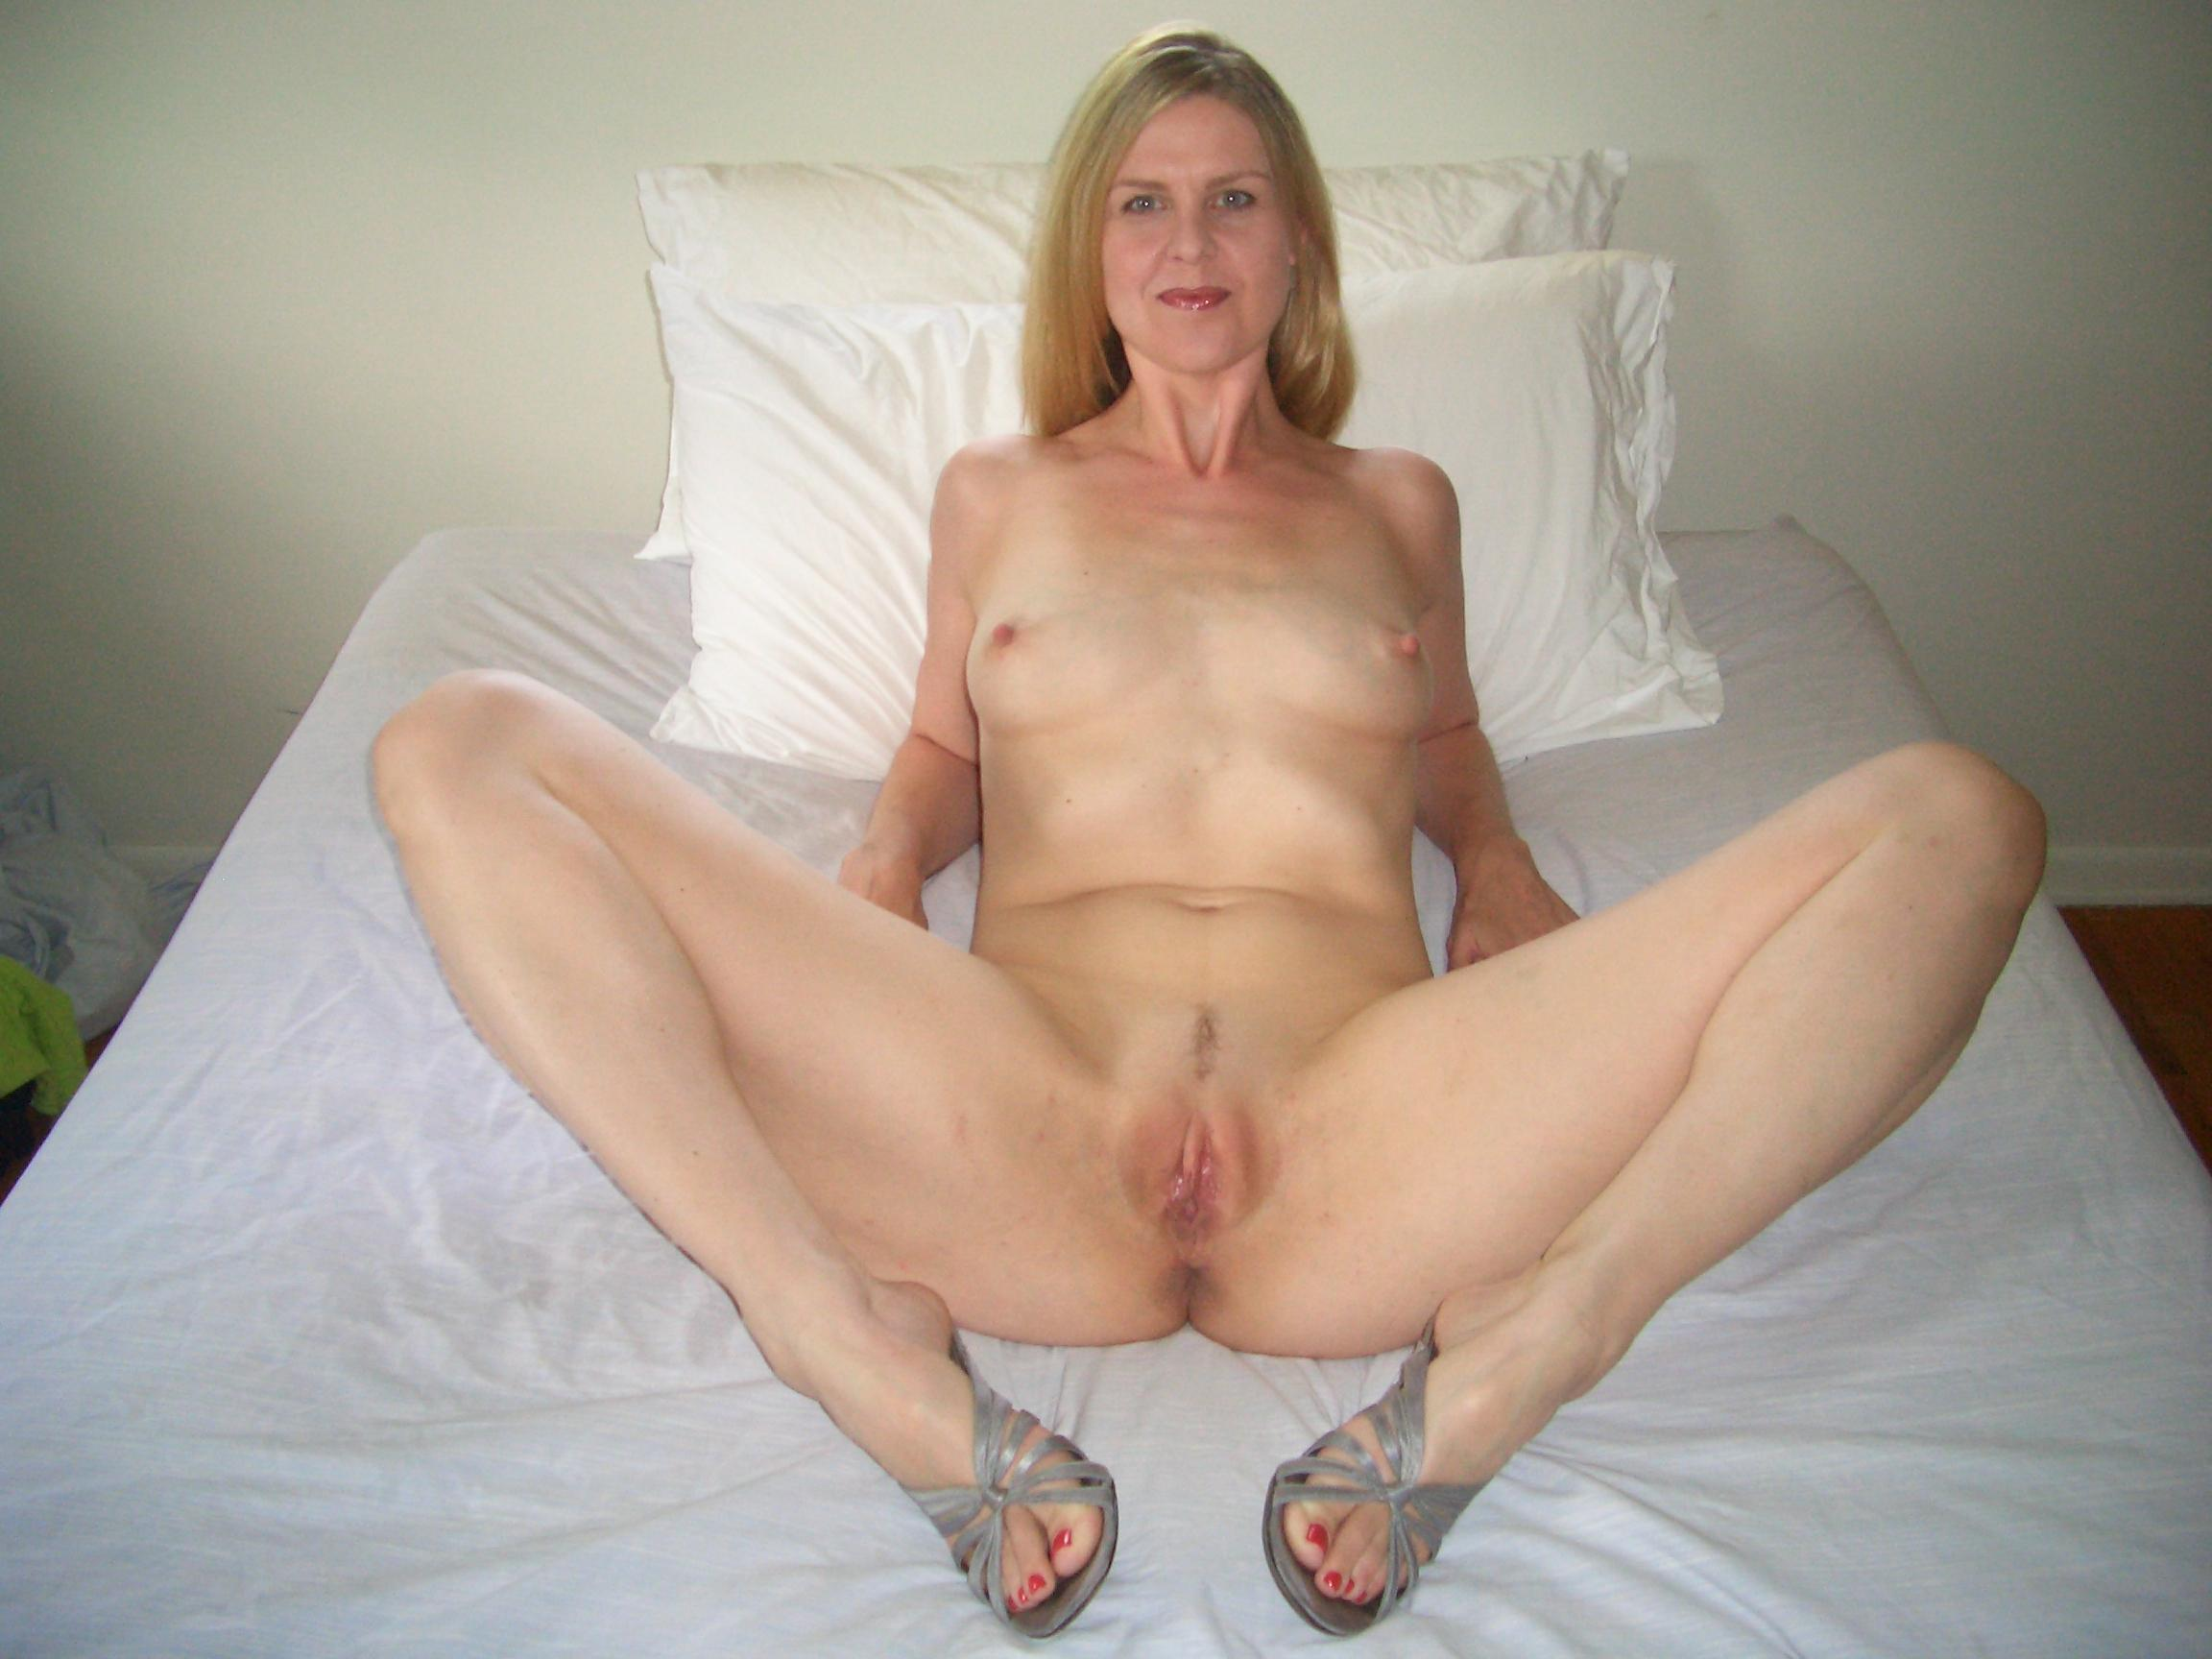 Mature housewives amateur nude